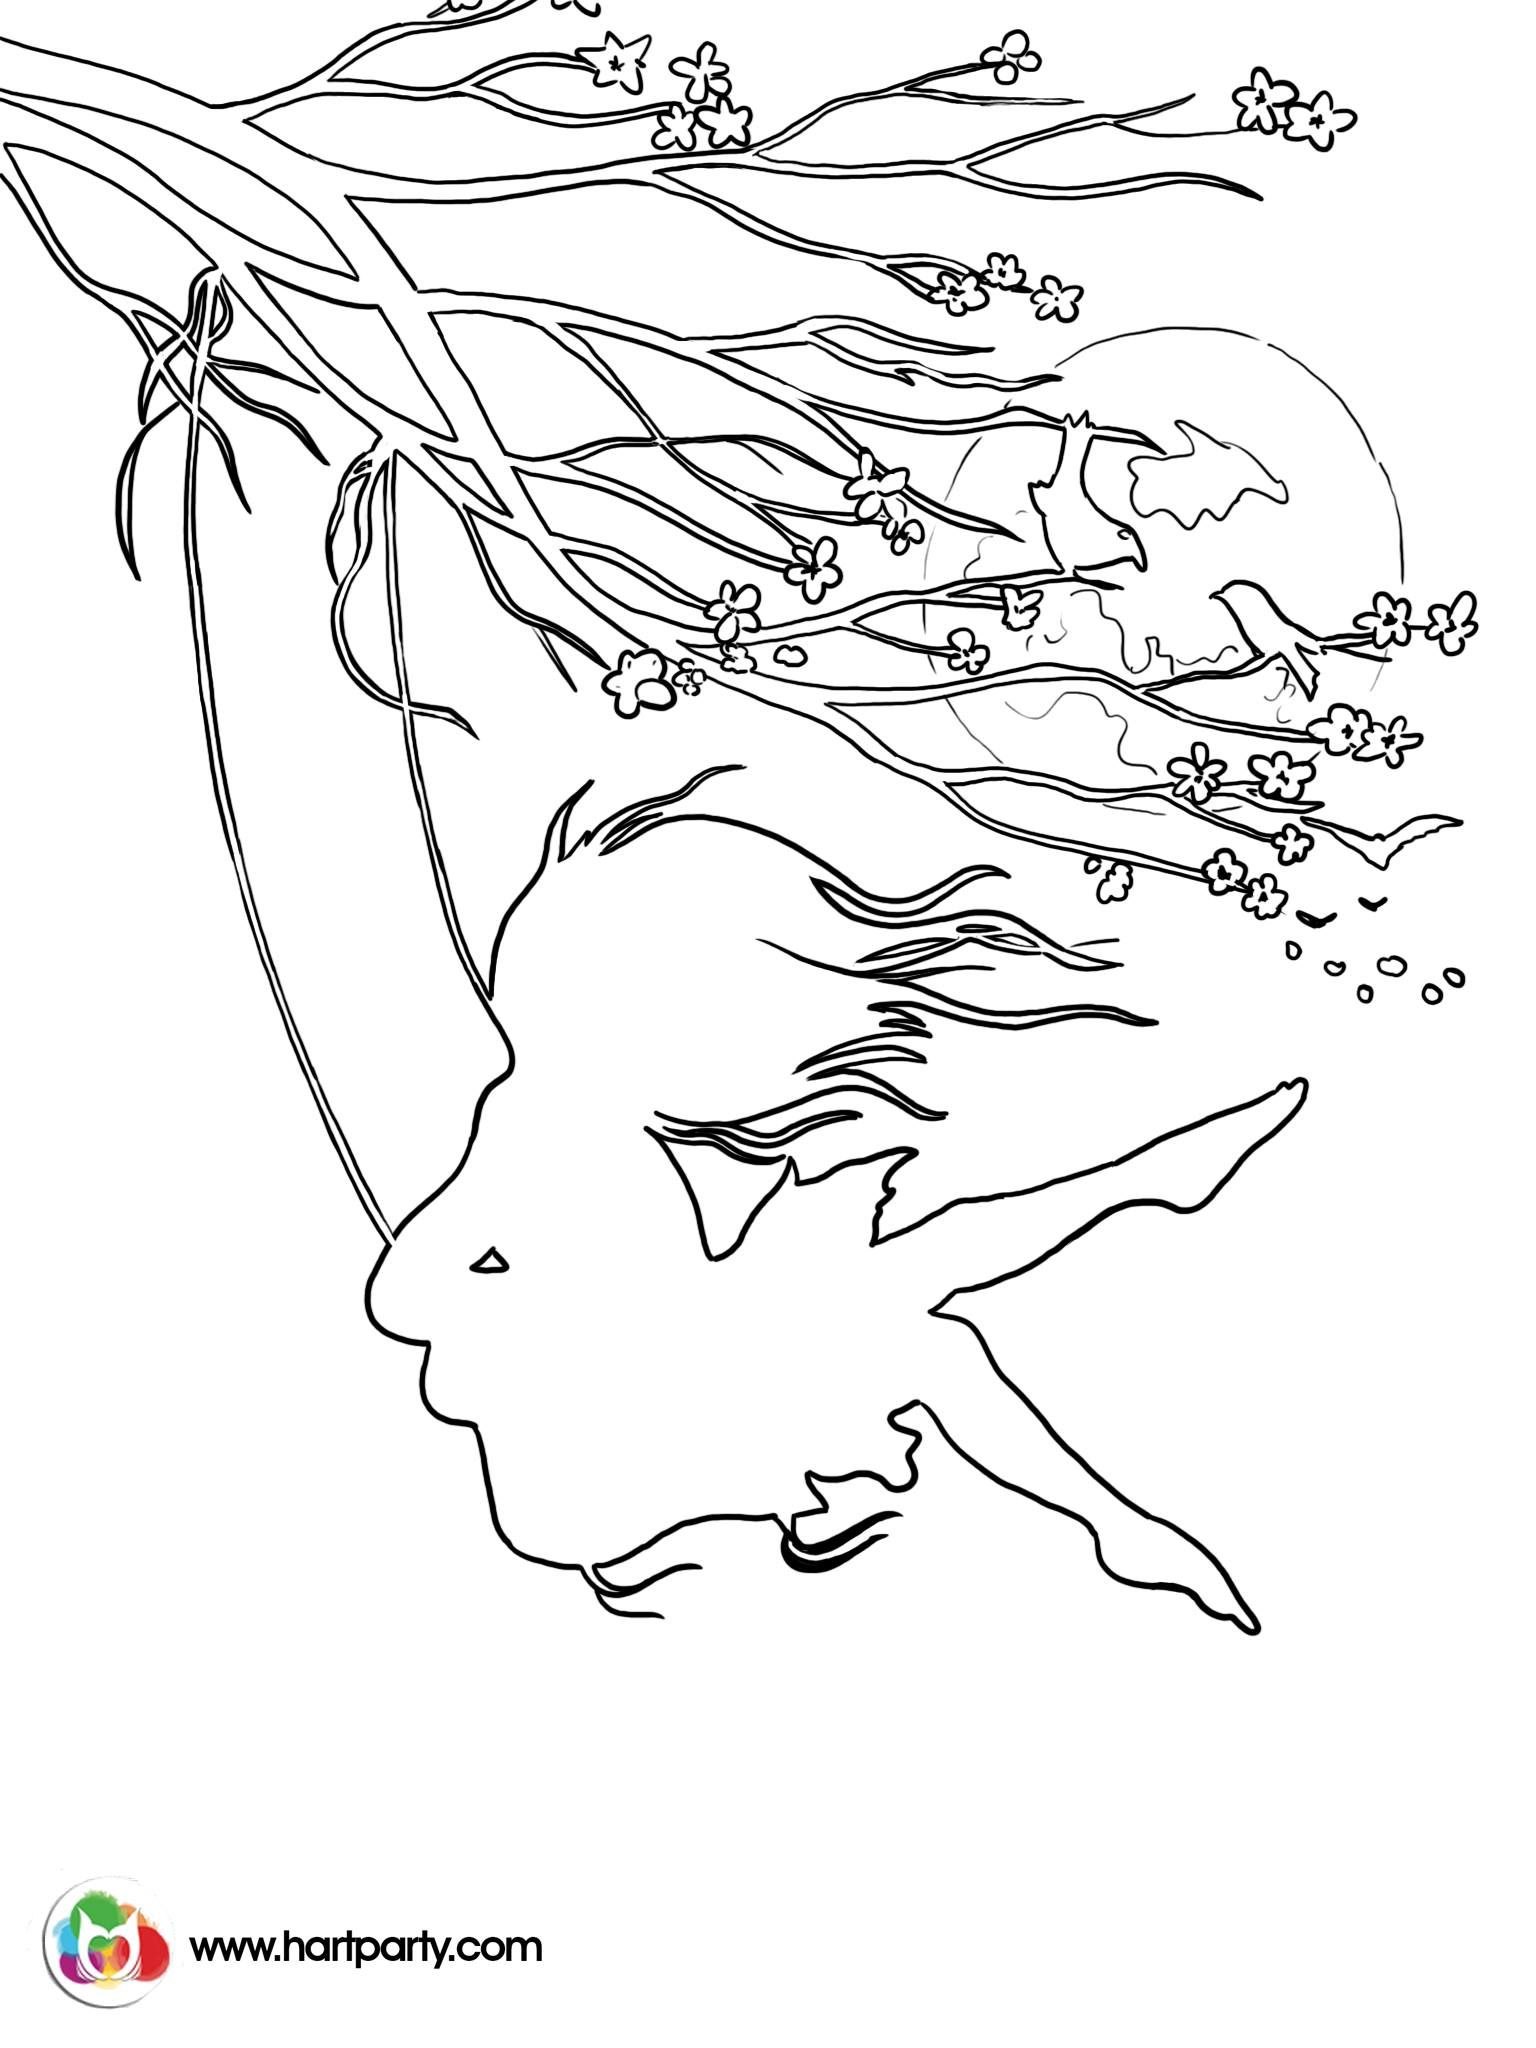 Hopes Swing Traceable Coloring Page Of A Girl On Swing From Cherry